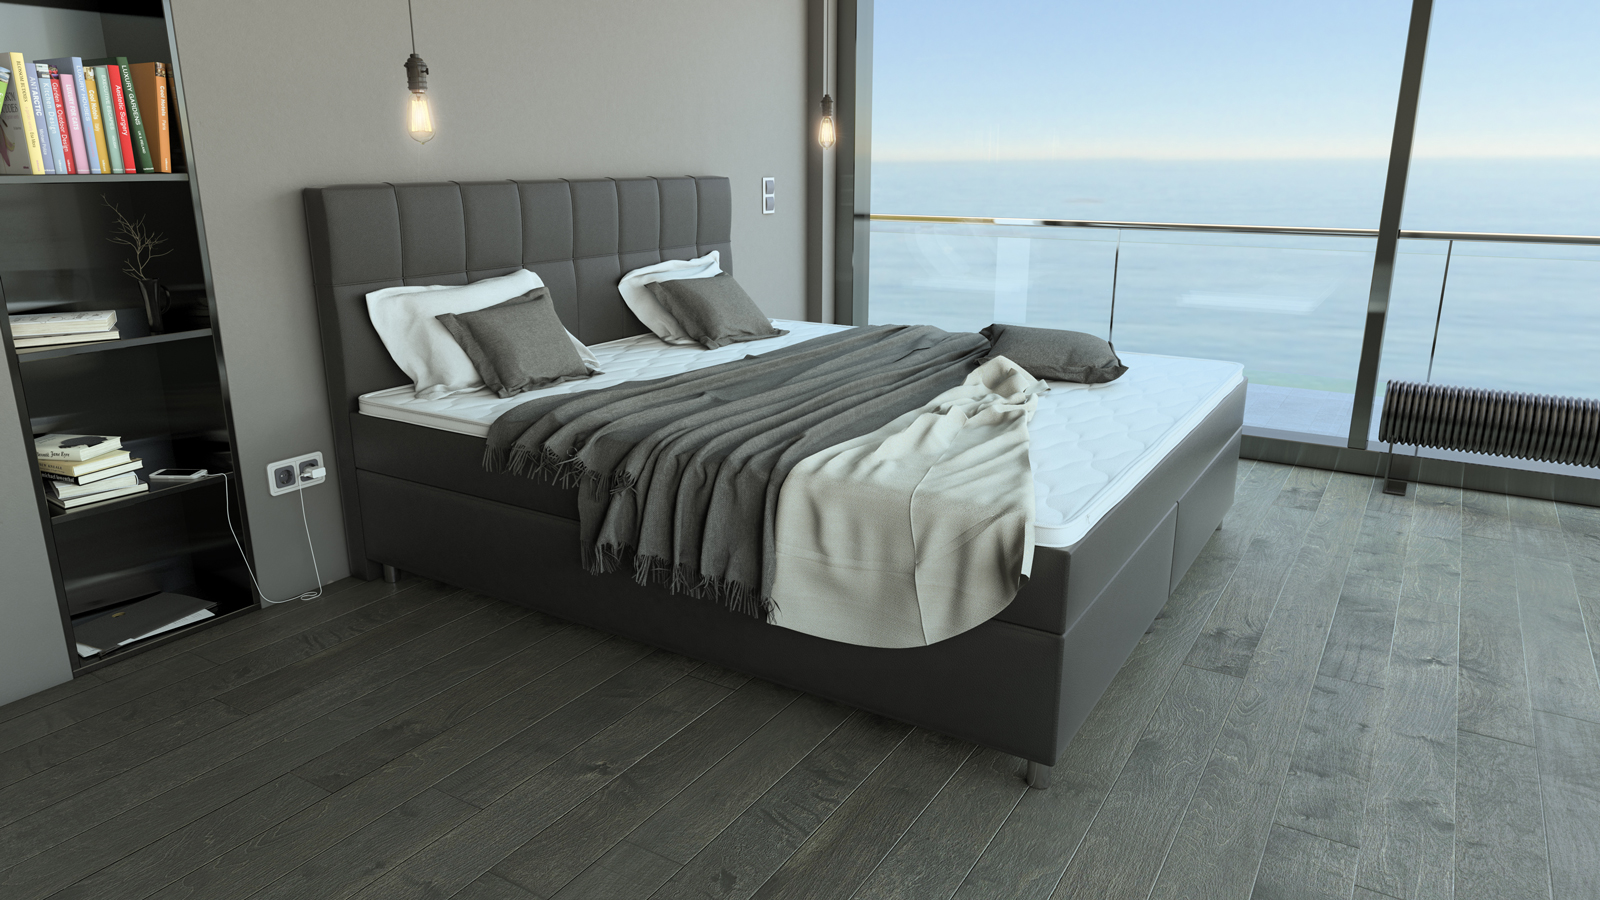 sam boxspringbett hotelbett 180x200 cm grau zalan demn chst. Black Bedroom Furniture Sets. Home Design Ideas